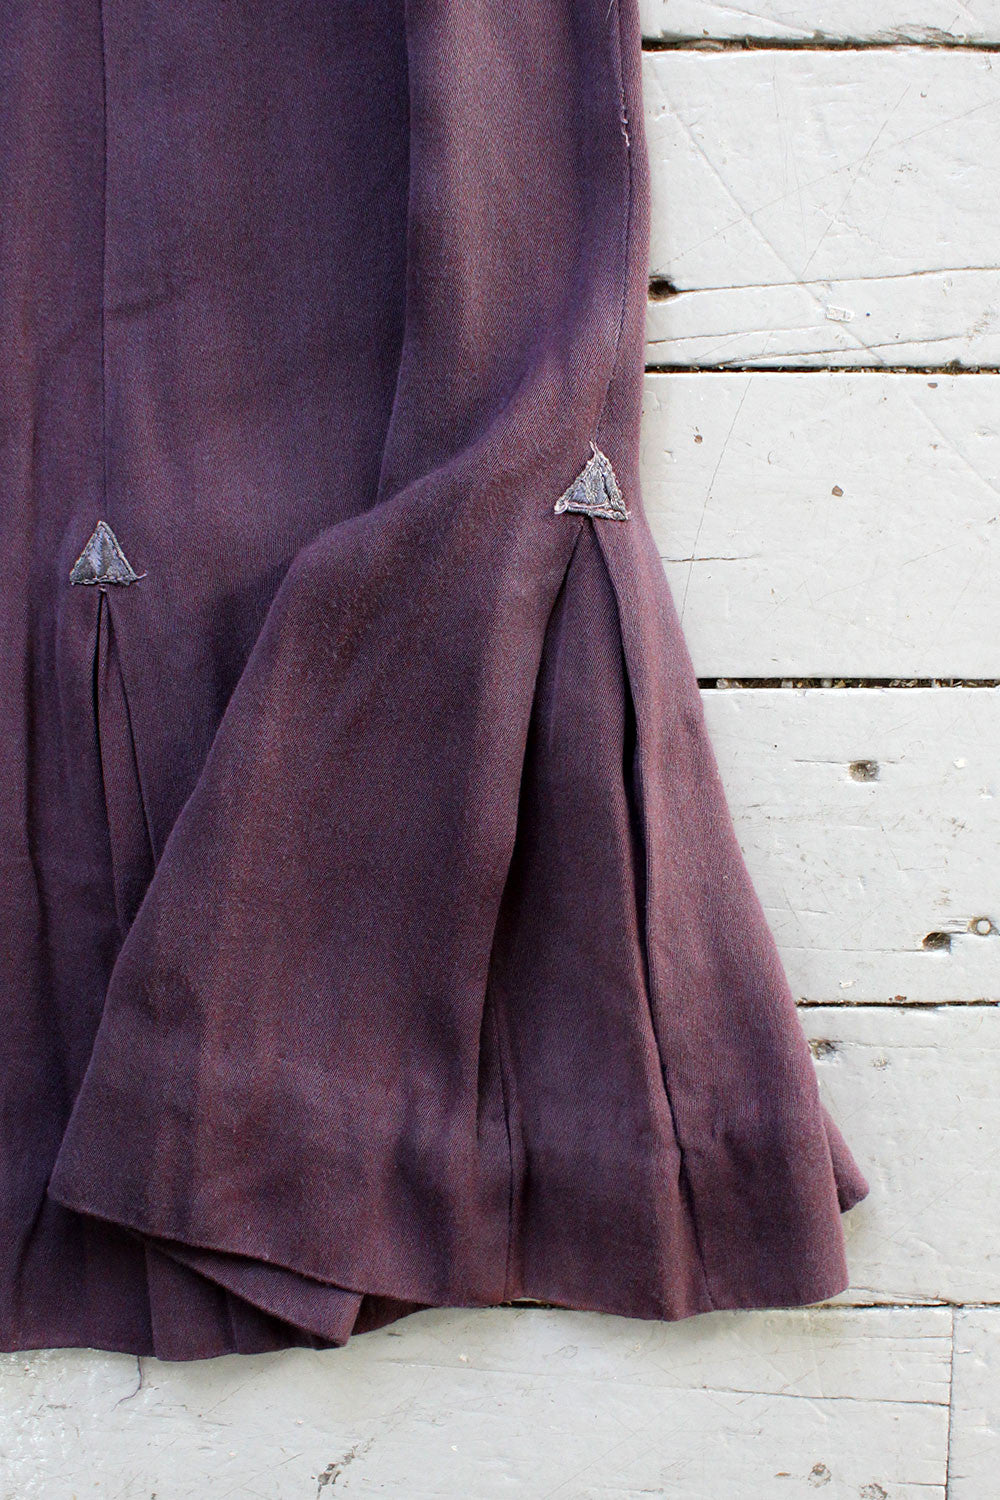 40s Purple Arrow Pleat Skirt XS/S